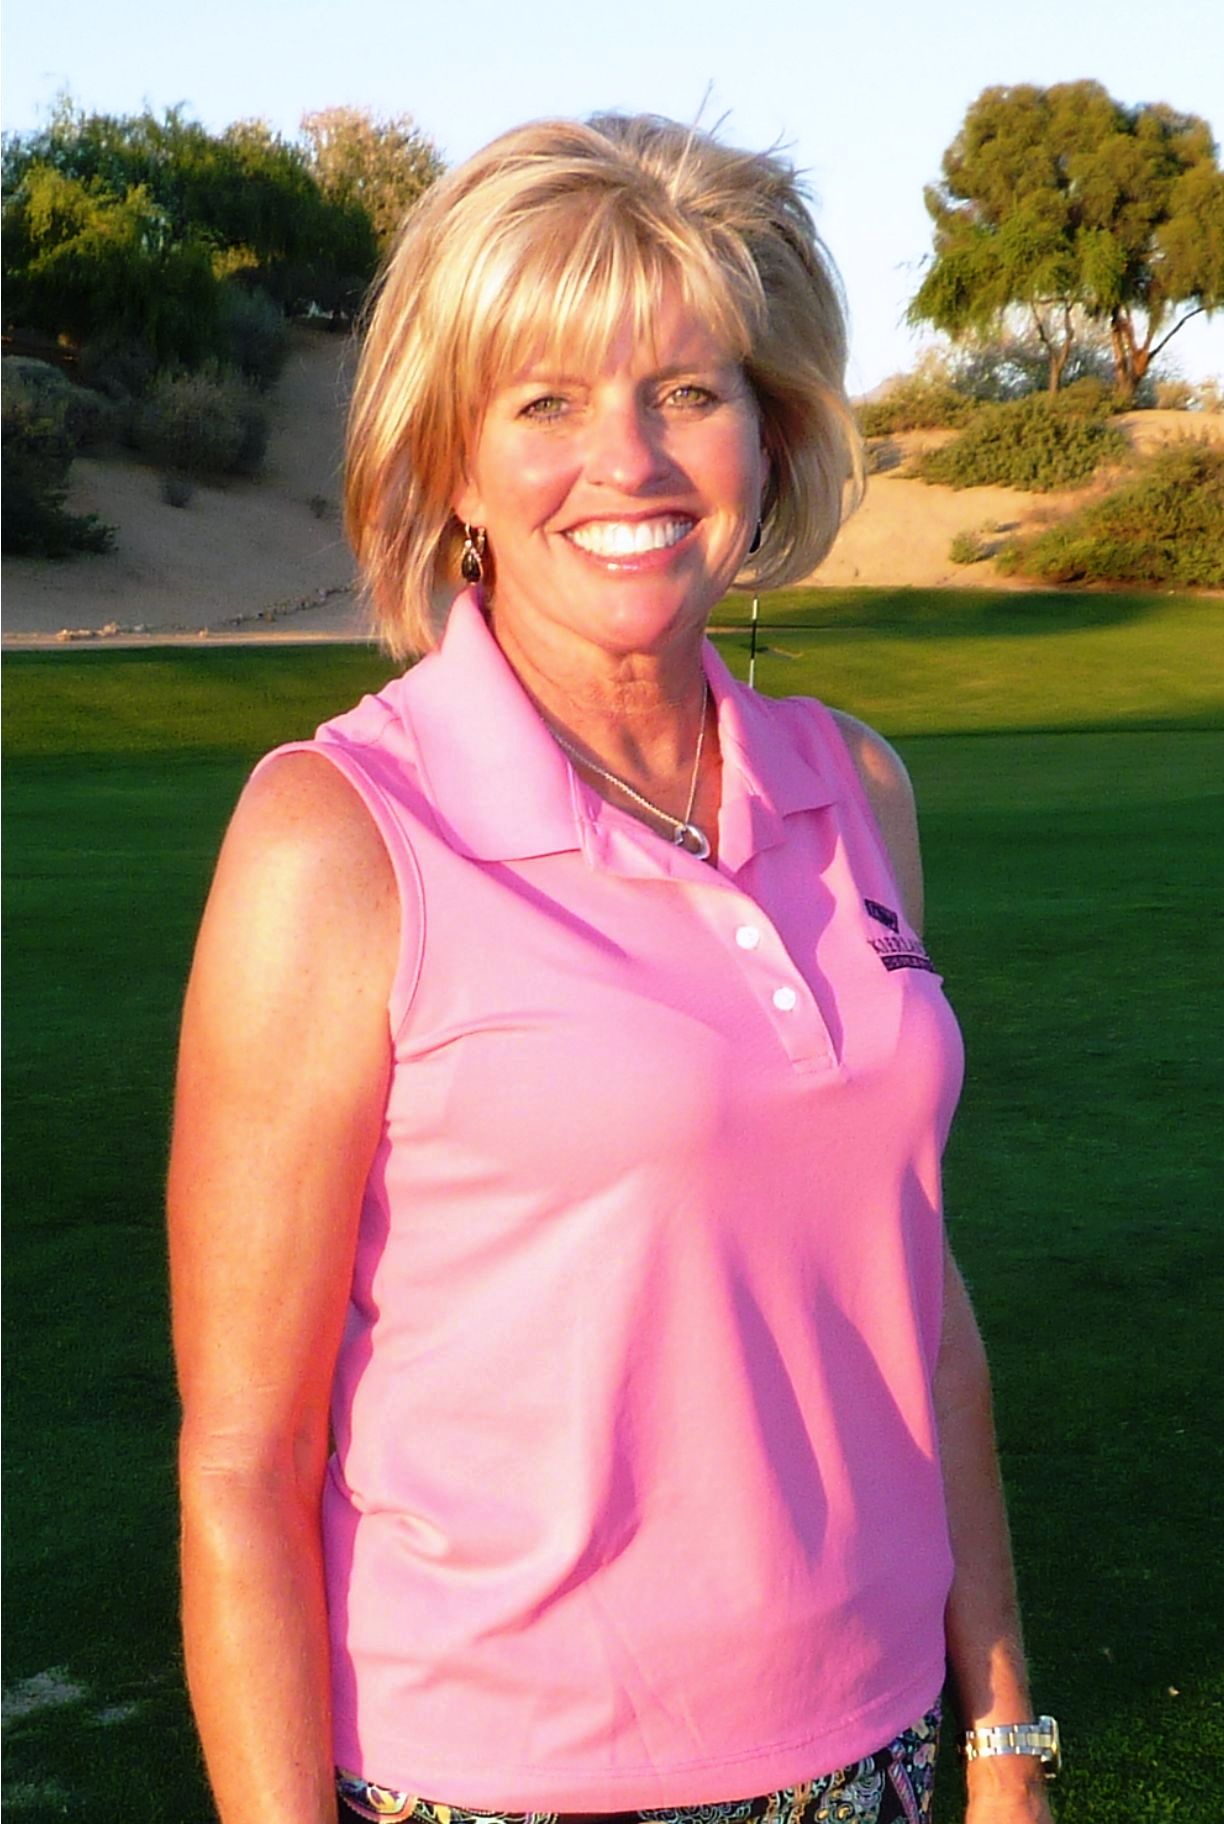 LPGA-USGA Girls Golf Founder Sandy Labauve